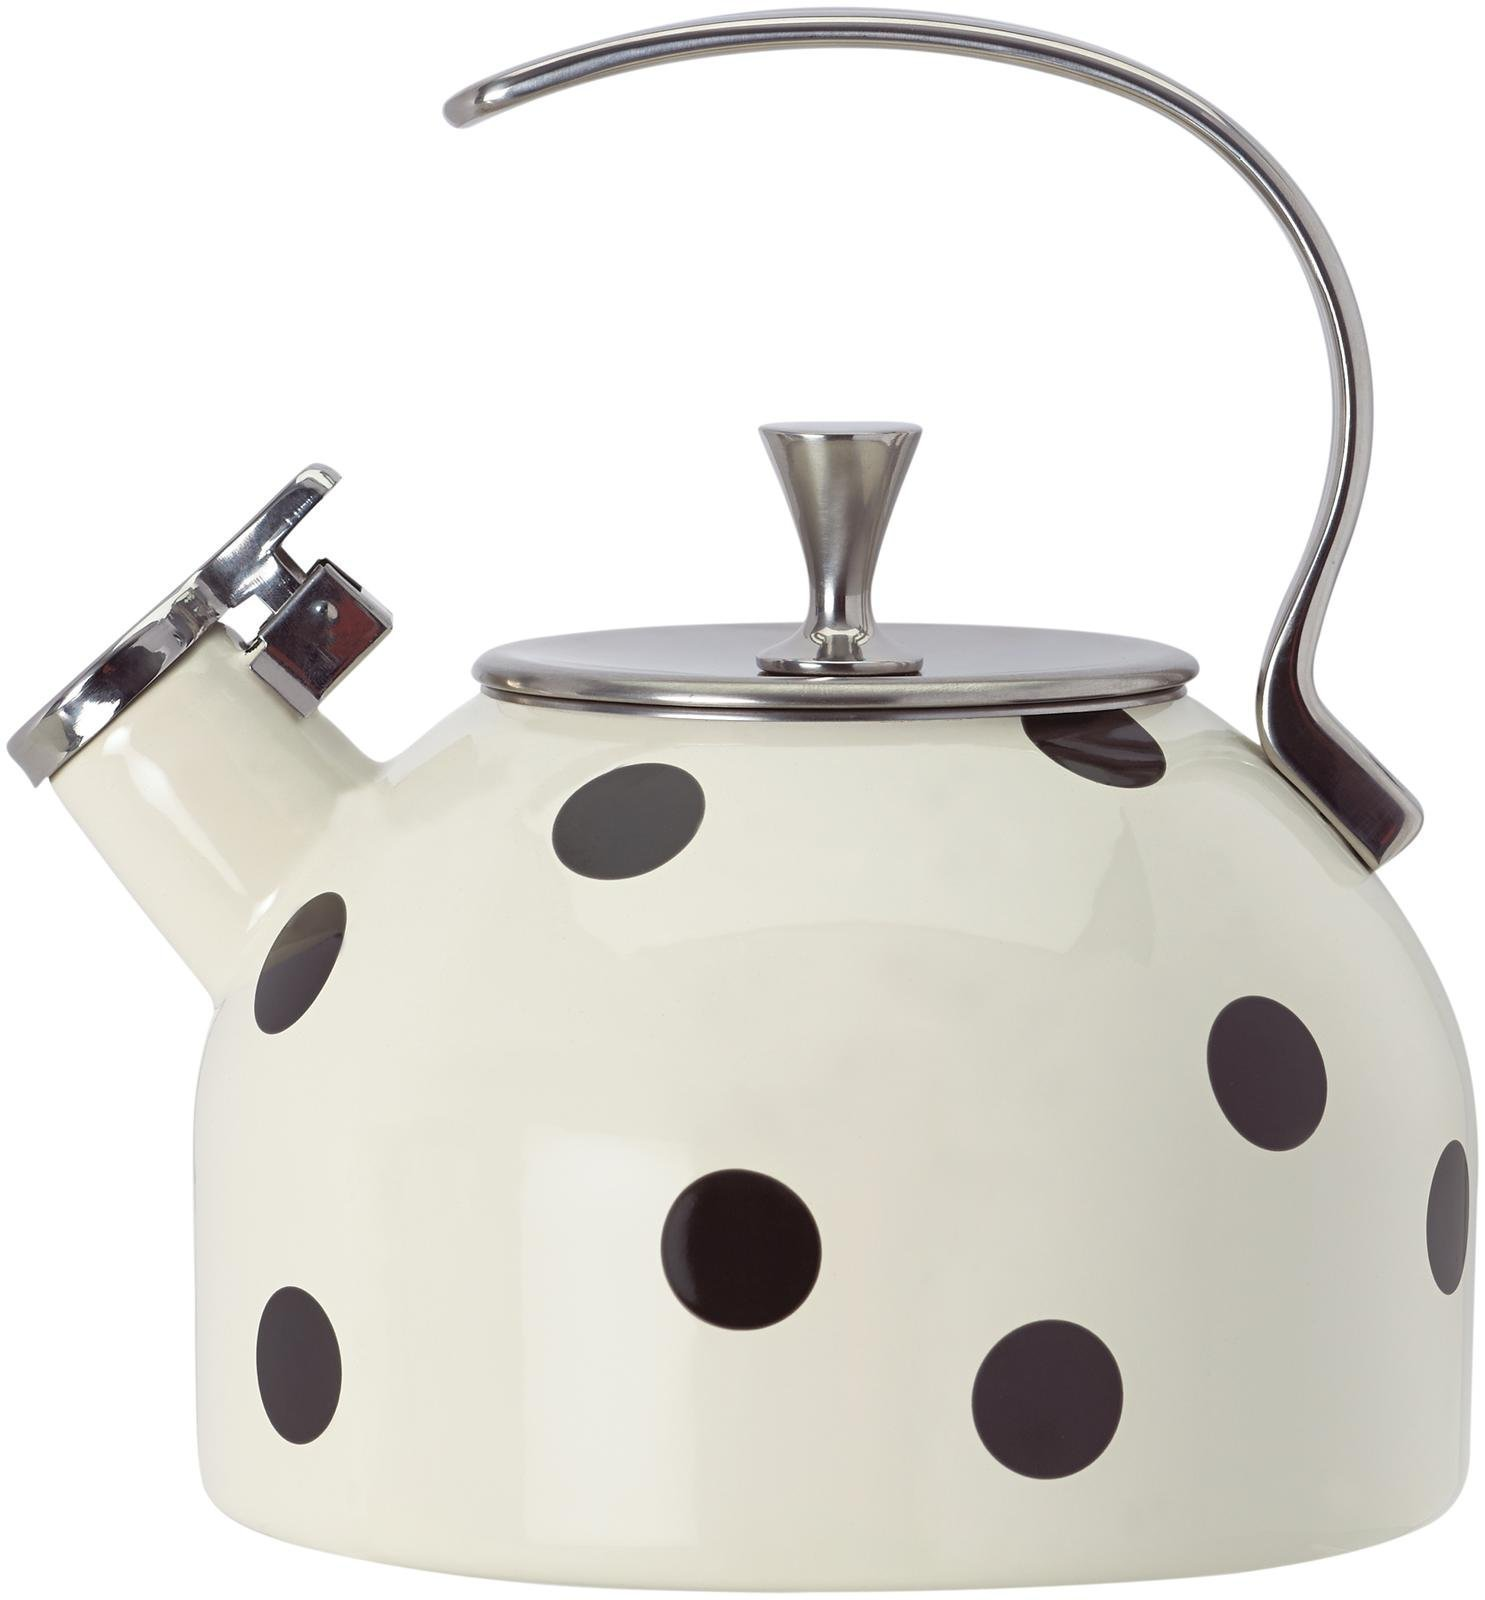 Kate Spade New York Deco Dot Black Tea Kettle by Kate Spade New York